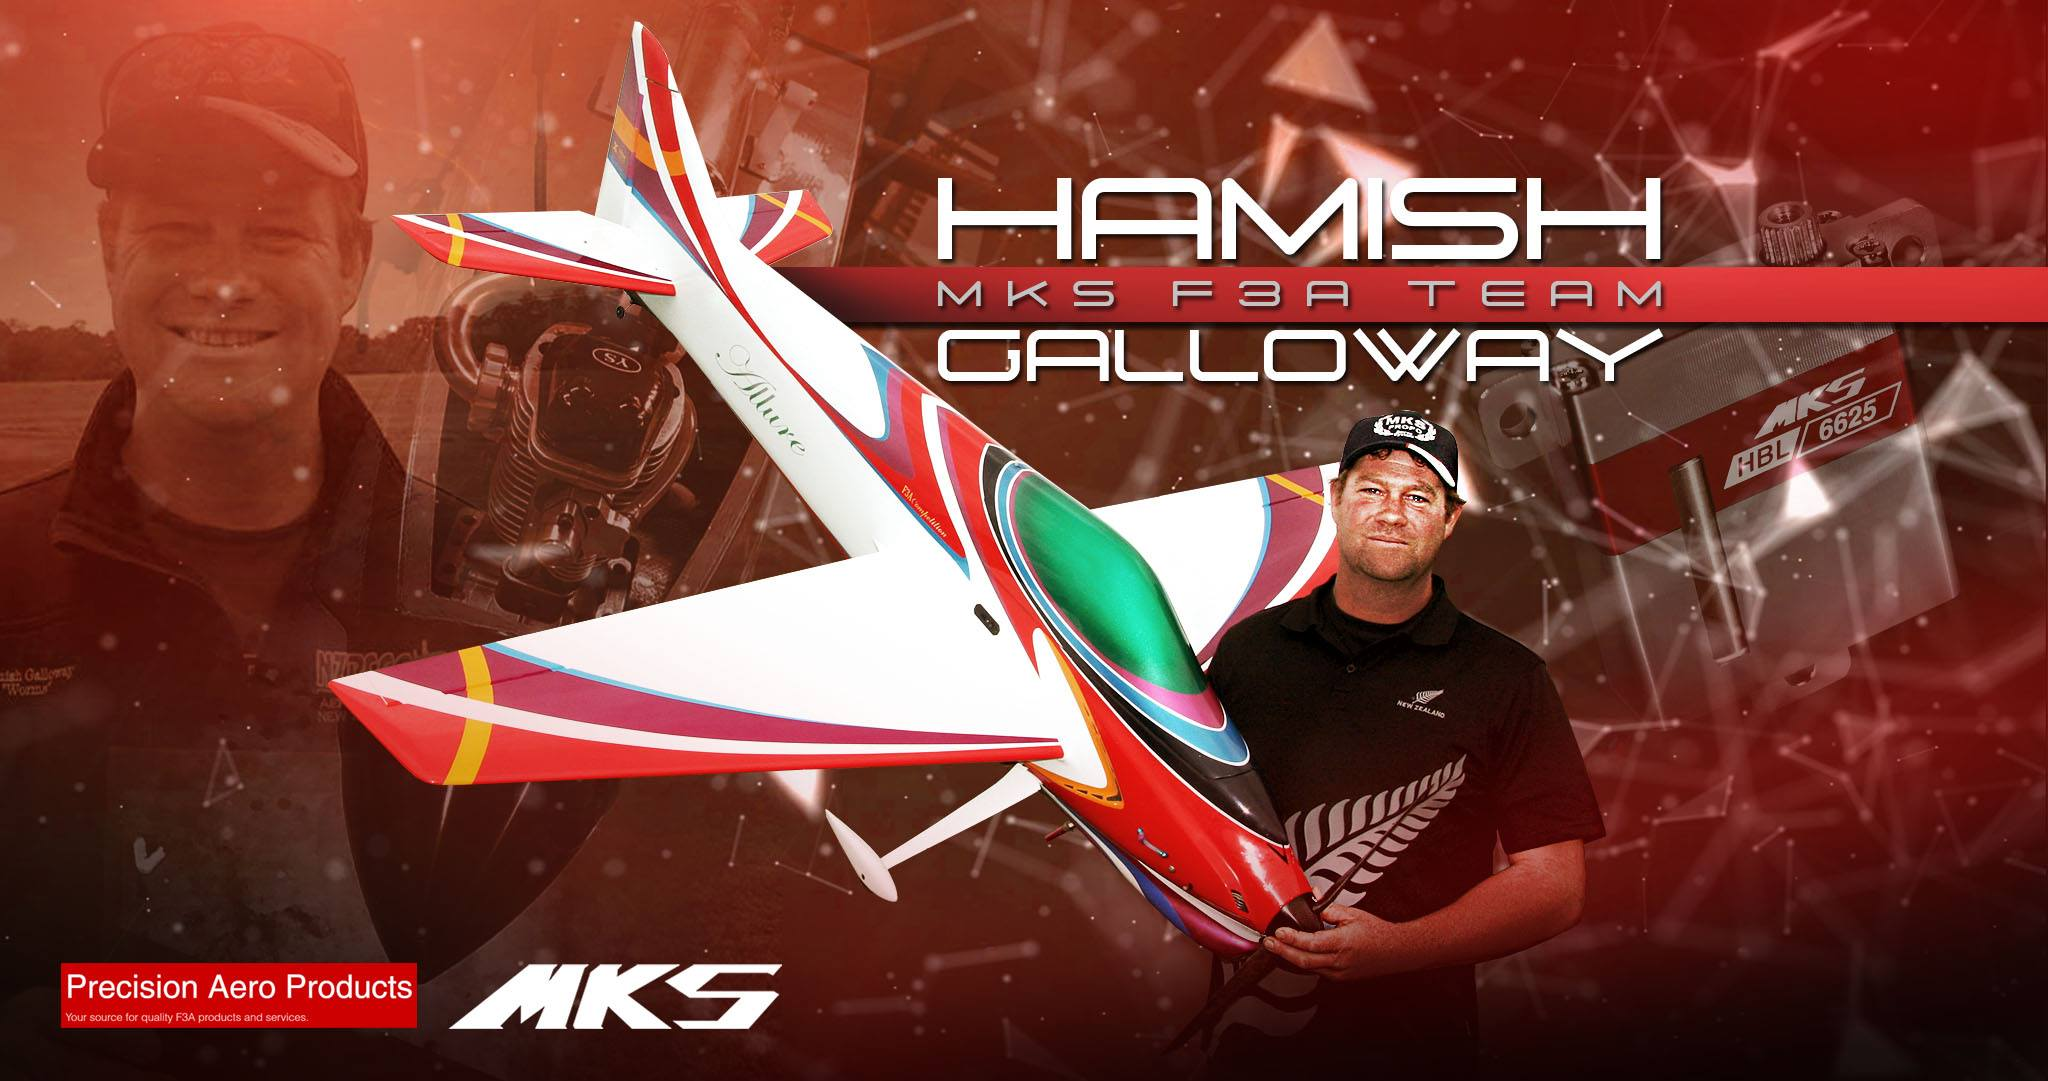 Hamish Galloway joins the MKS F3A Team!